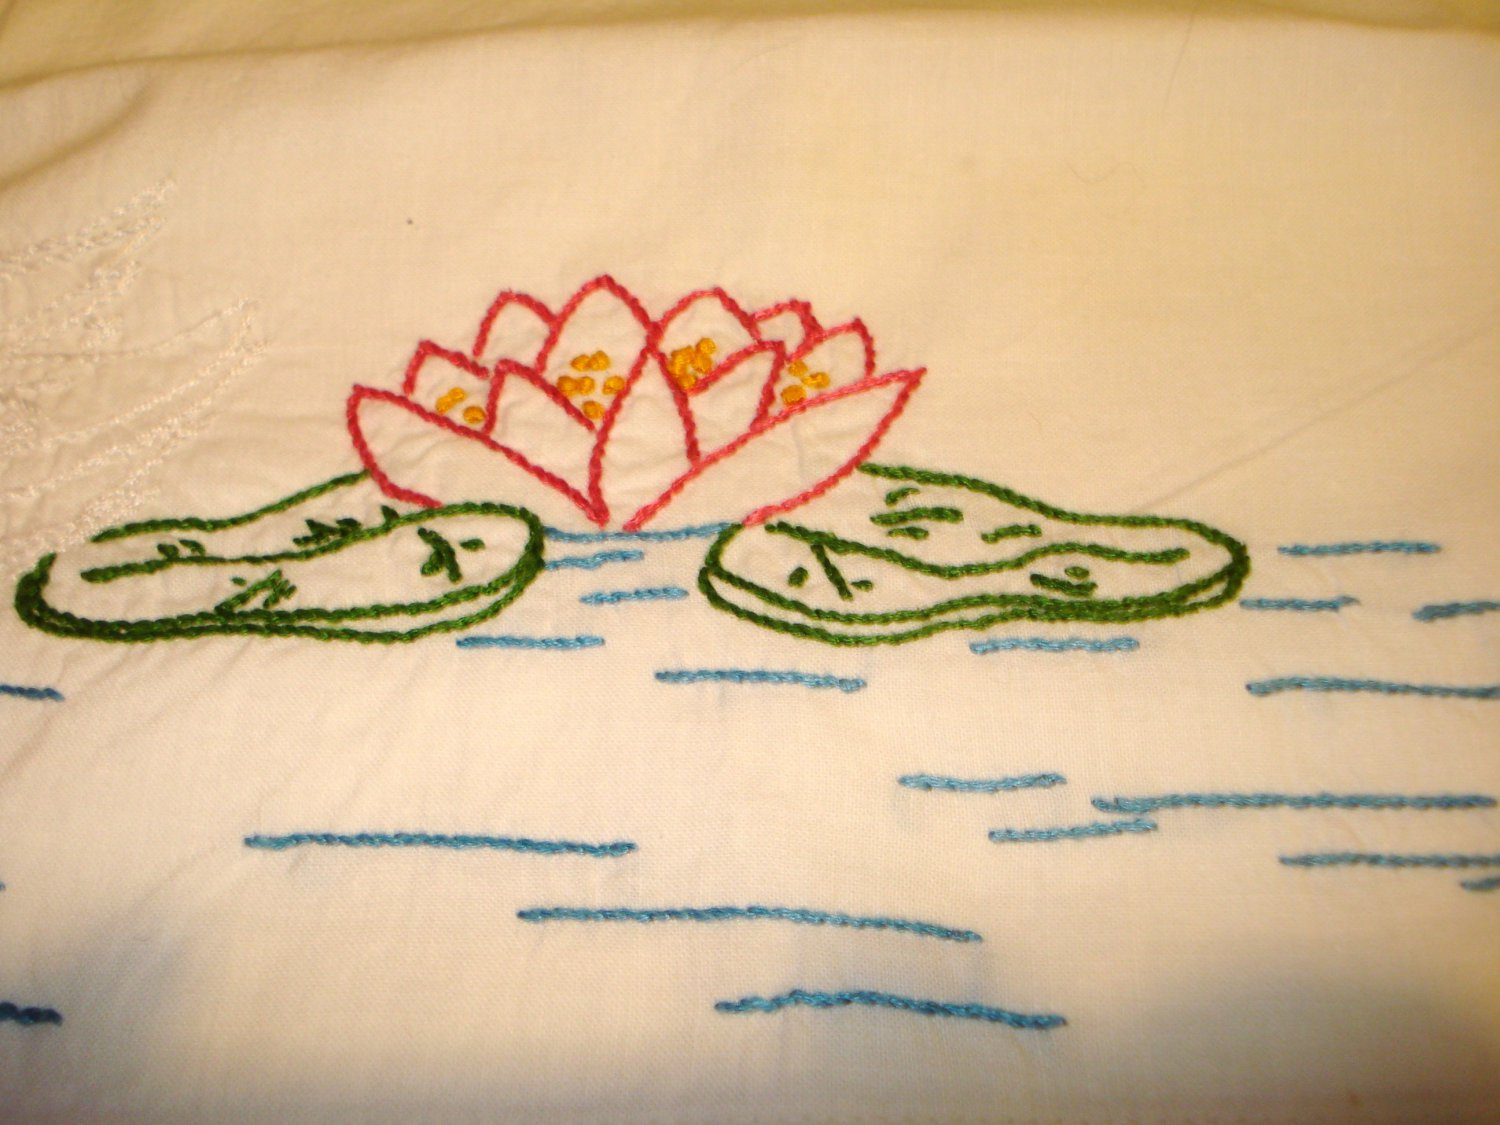 Hand embroidered pillow case cotton swan pond lilies filet lace border vintage hc2994